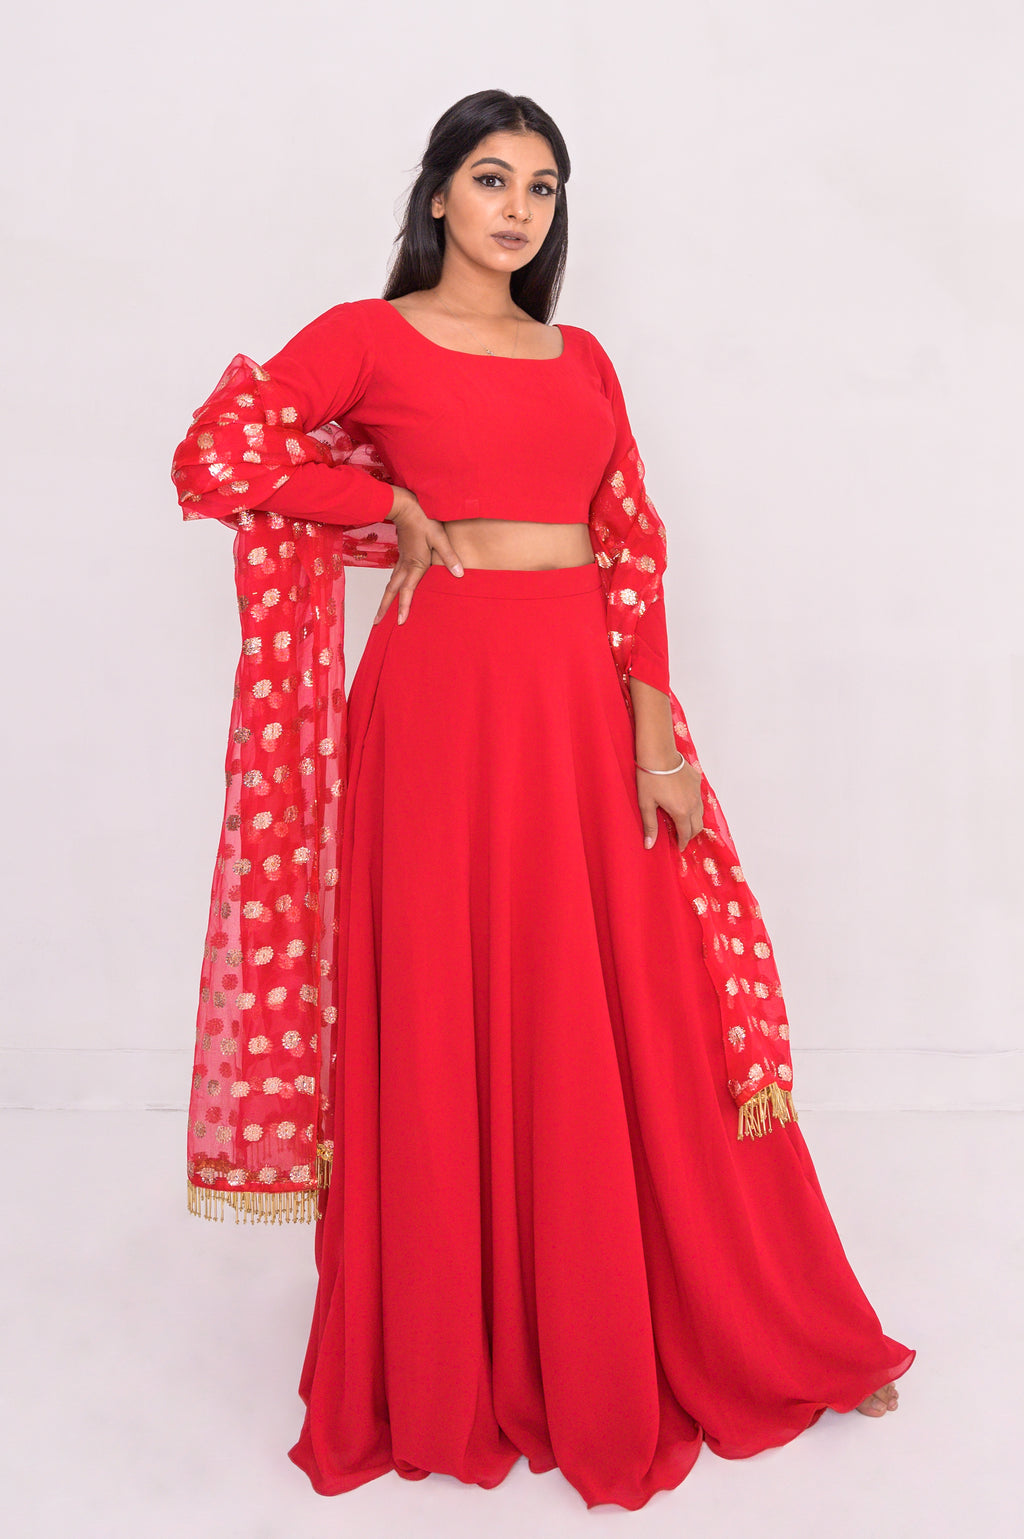 Indian dress. Ruby red flowy chiffon lengha set, with silvery gold and red festive dupatta.   Skirt with POCKETS!